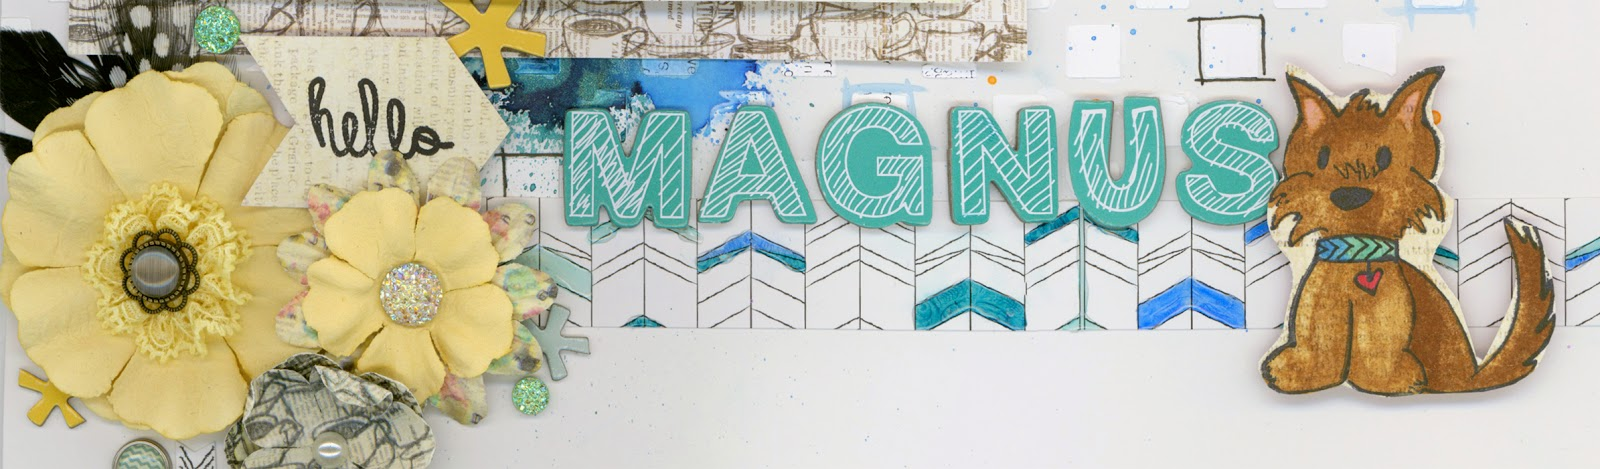 Hello Magnus, The Mortal Instruments, scrapbooking, paper crafting, scrapbook, pet, dog, Morkie, Maltese, Yorkie, stamping, Prima Marketing, Studio Calico, Ranger Ink, American Crafts, Alice Scraps Wonderland, Glitz Design, stickers, brads, flowers